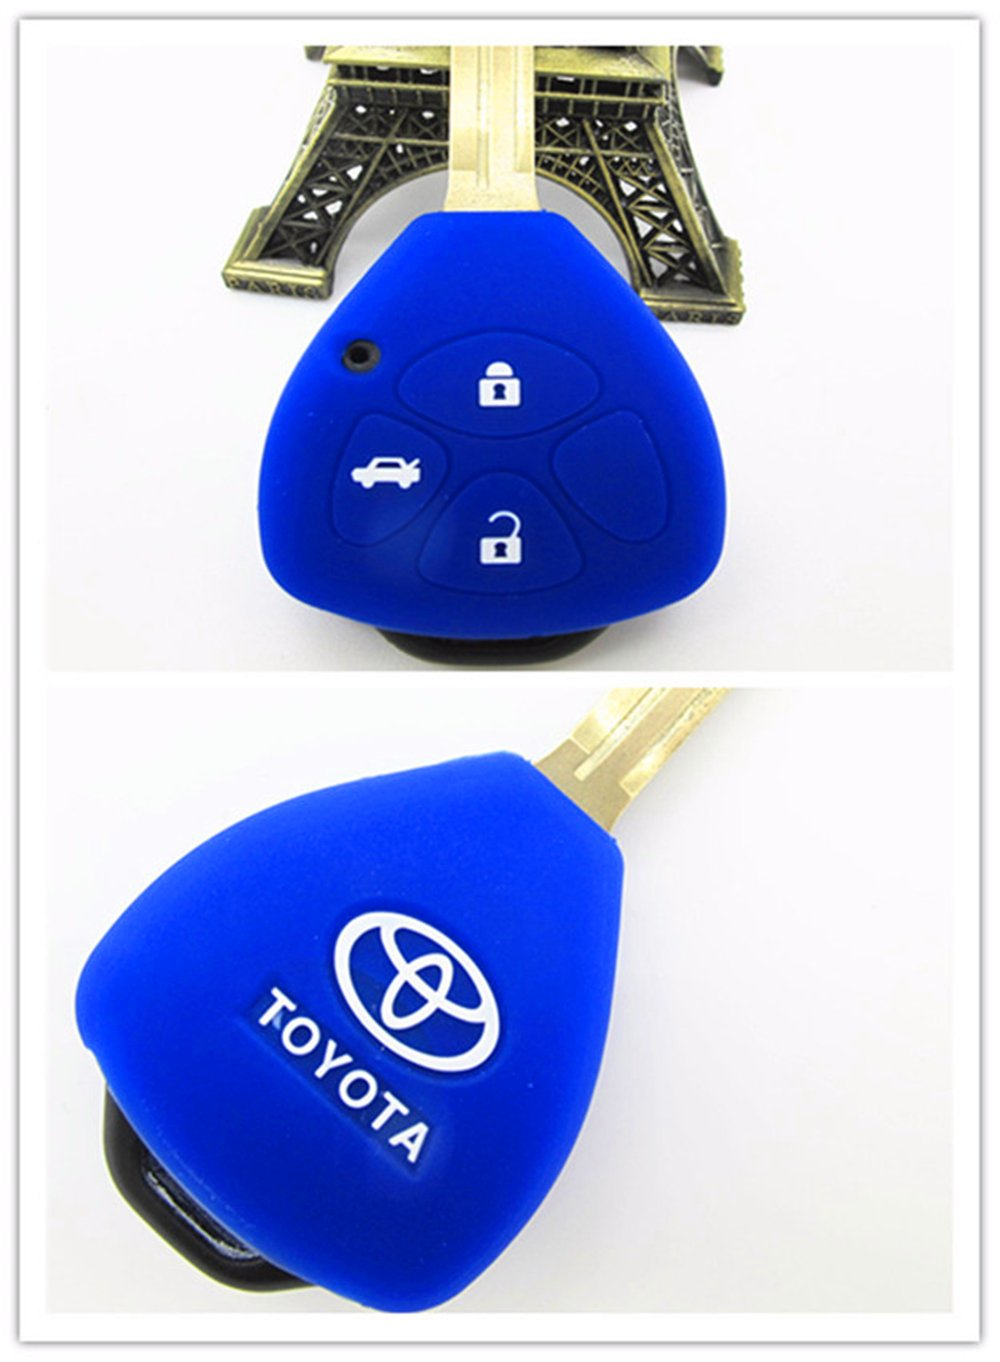 Yellow Hwota 3 Buttons Silicone Remote Car Key Case Cover Shell for Toyota Corolla RAV4 Camry Avalon Matrix Venza Yaris Land Cruiser